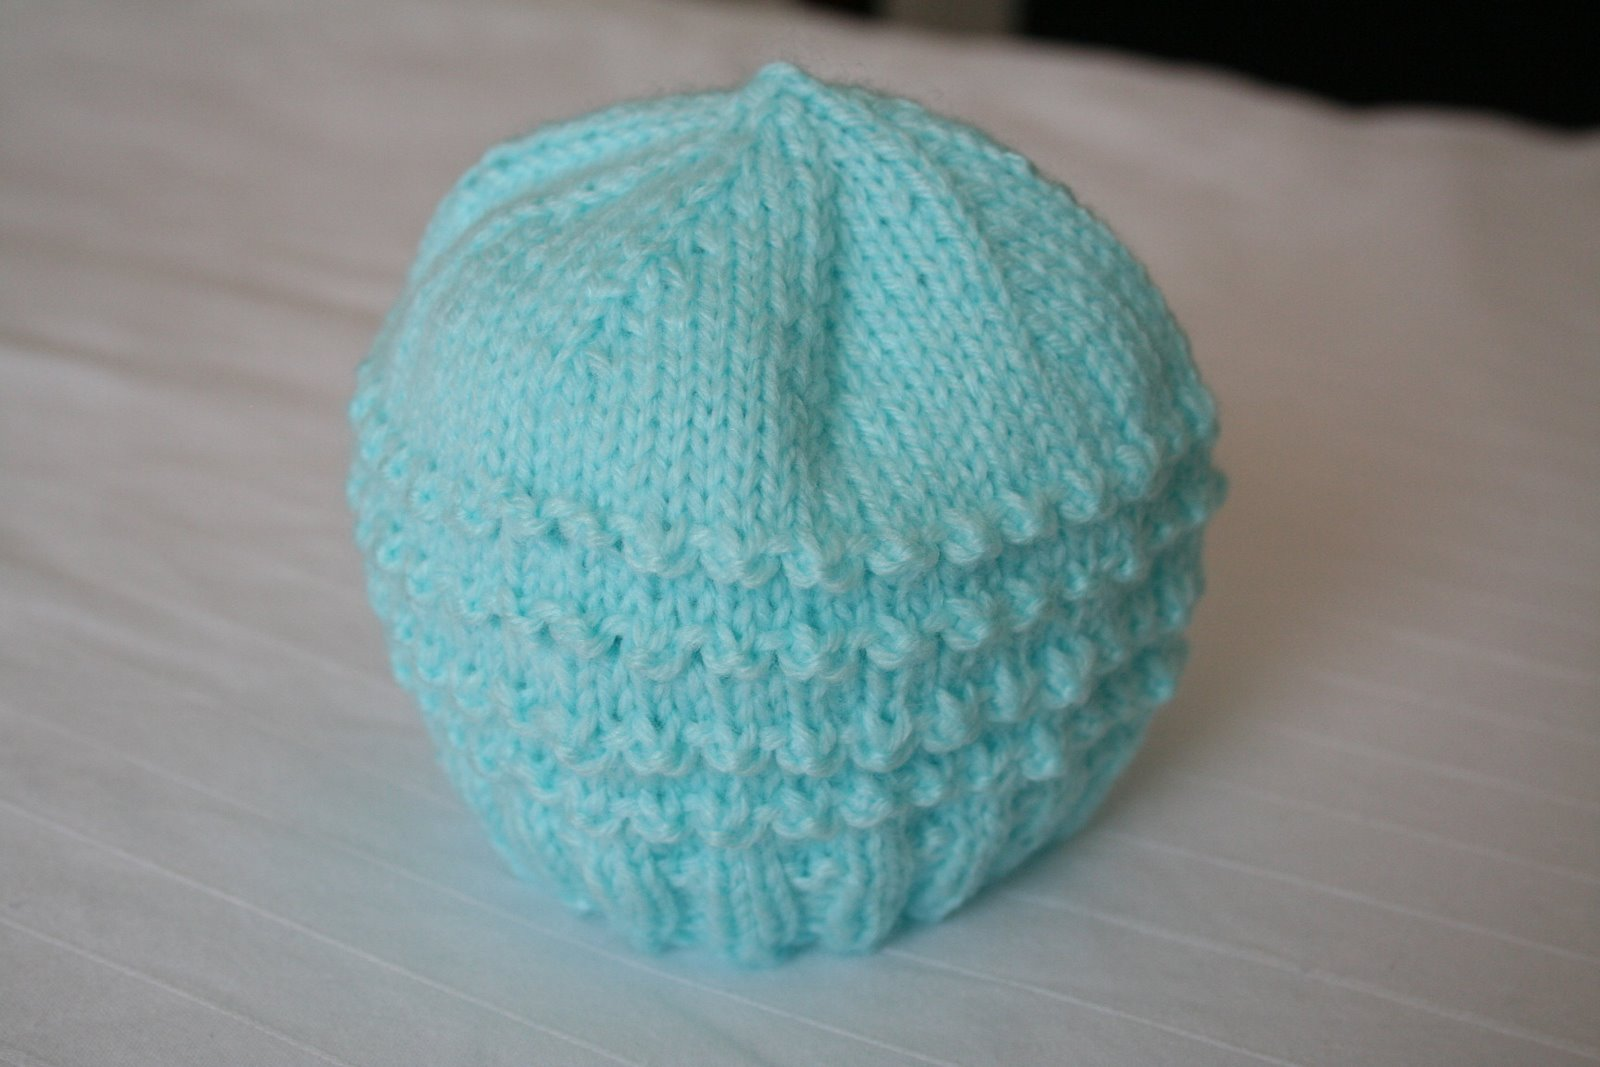 Knit Preemie Hat Pattern Instruction Photos